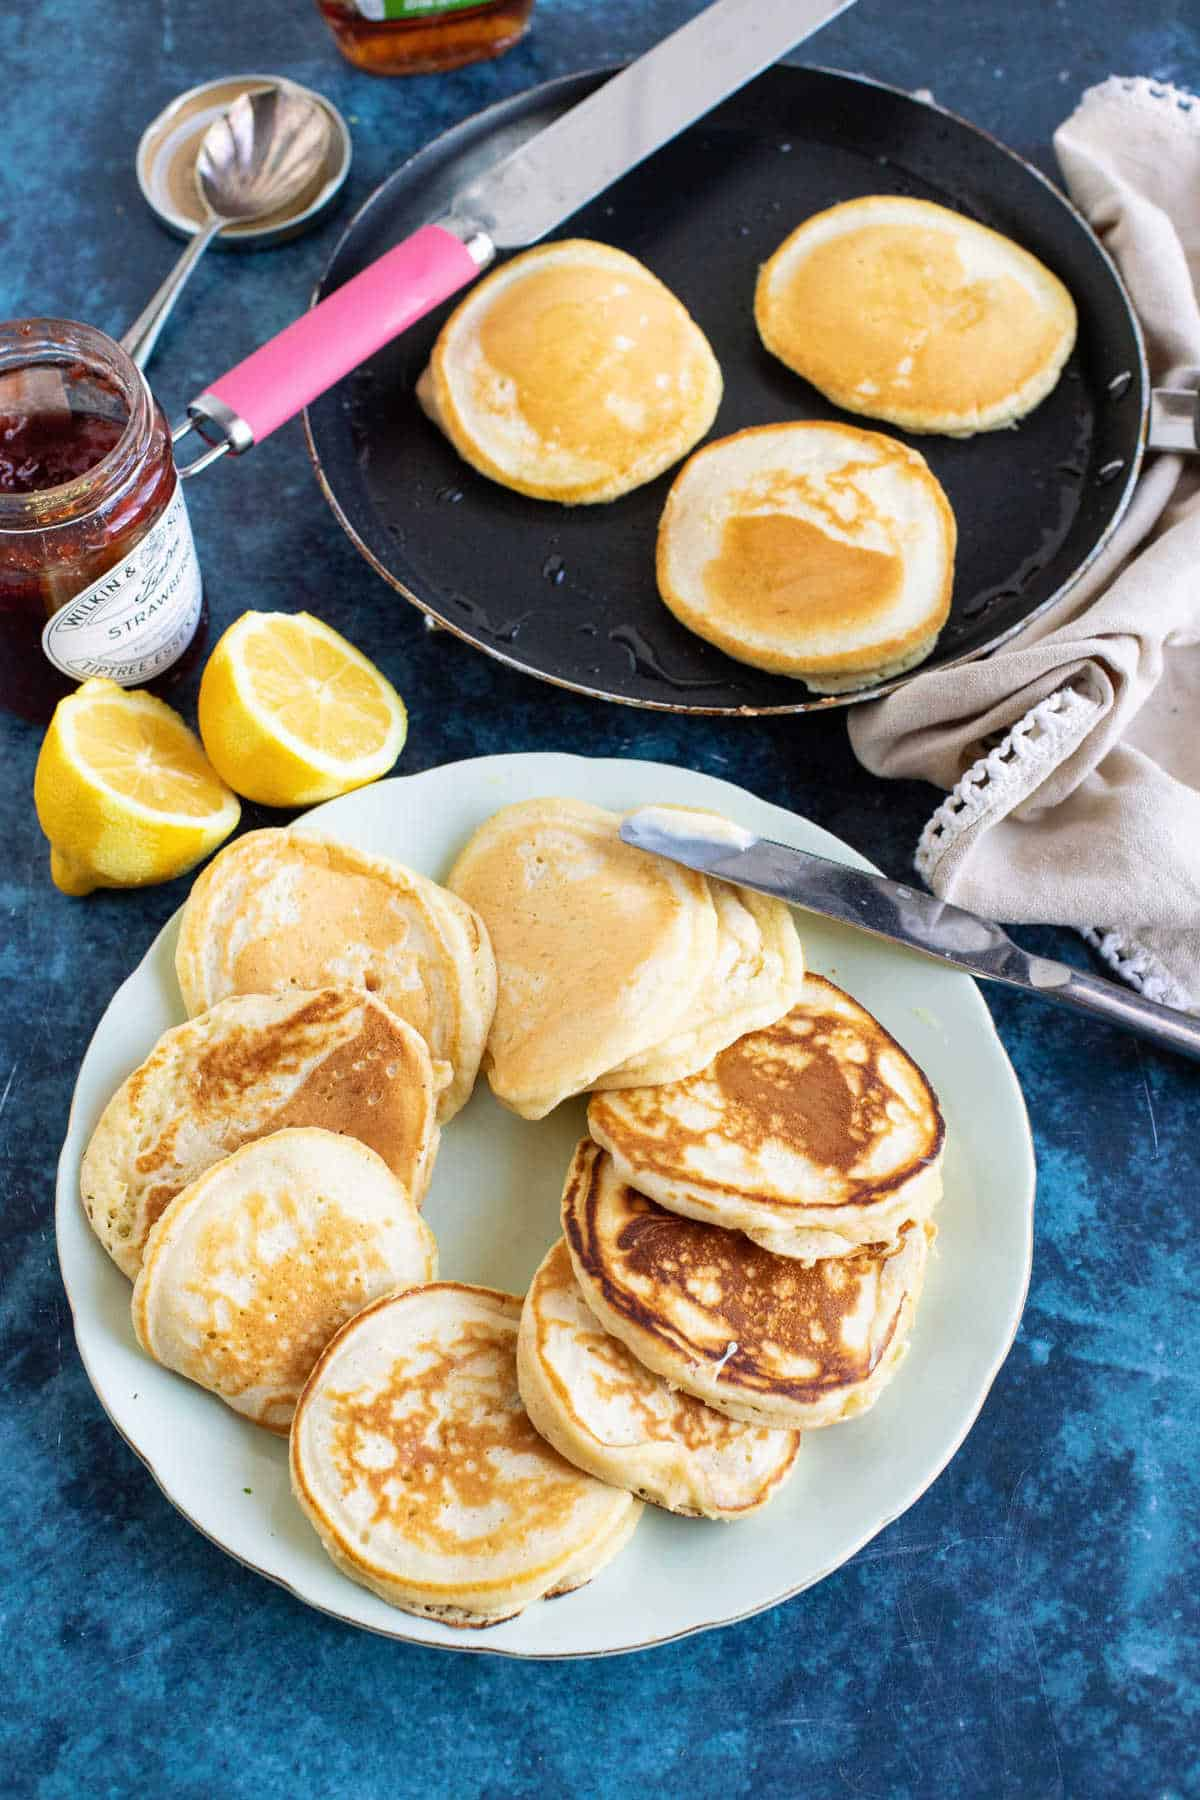 Drop scones served on a plate with butter and jam.